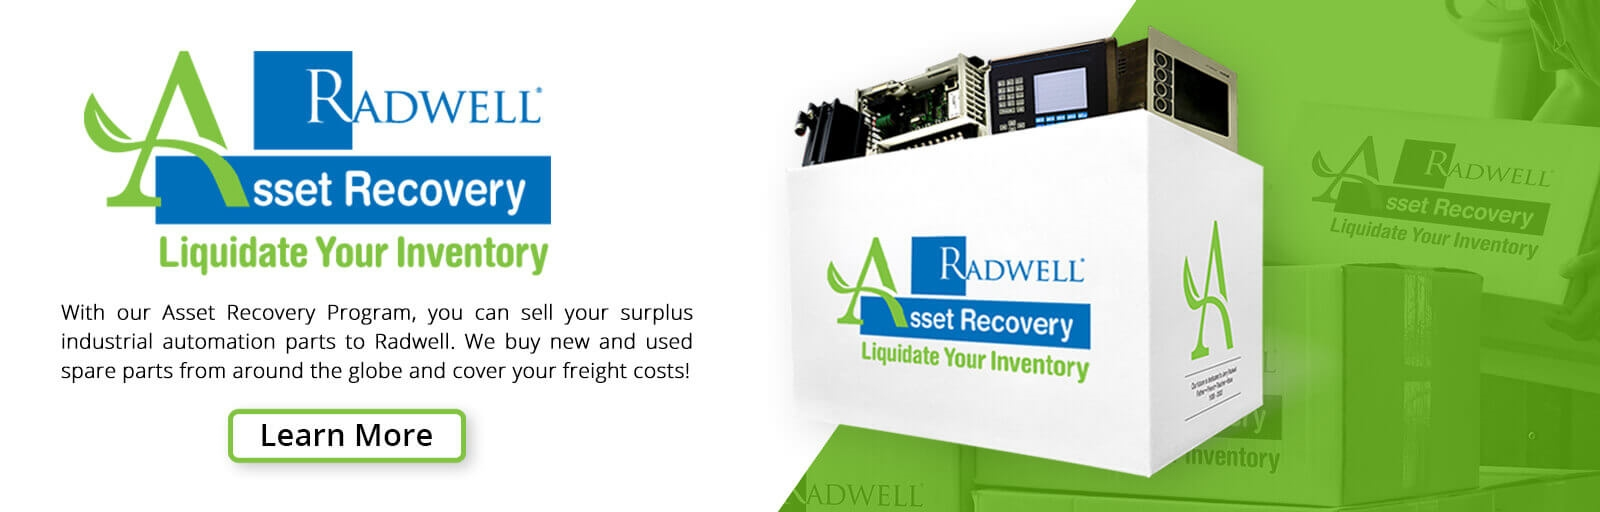 We buy new and used spare parts from around the globe and cover your freight costs!